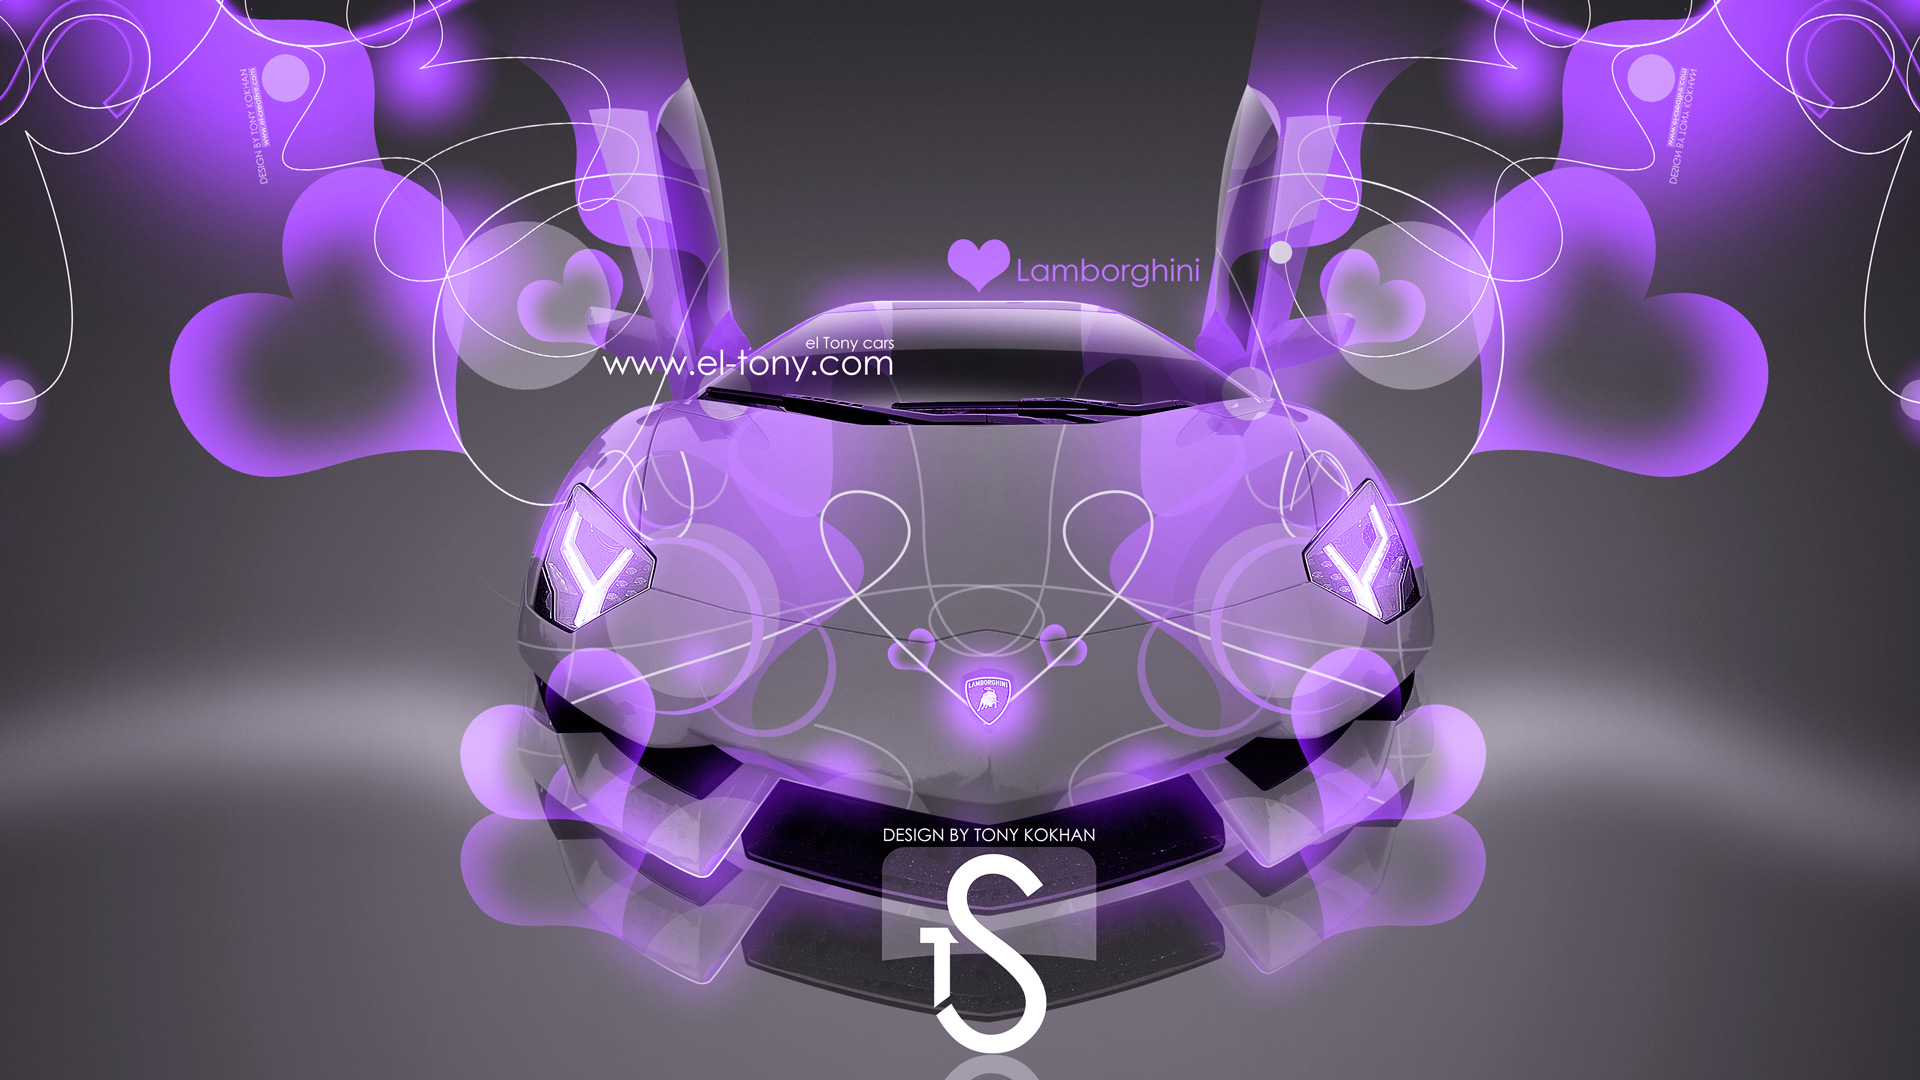 Lamborghini Aventador Violet Abstract Effects 2013 HD Wallpapers  ...